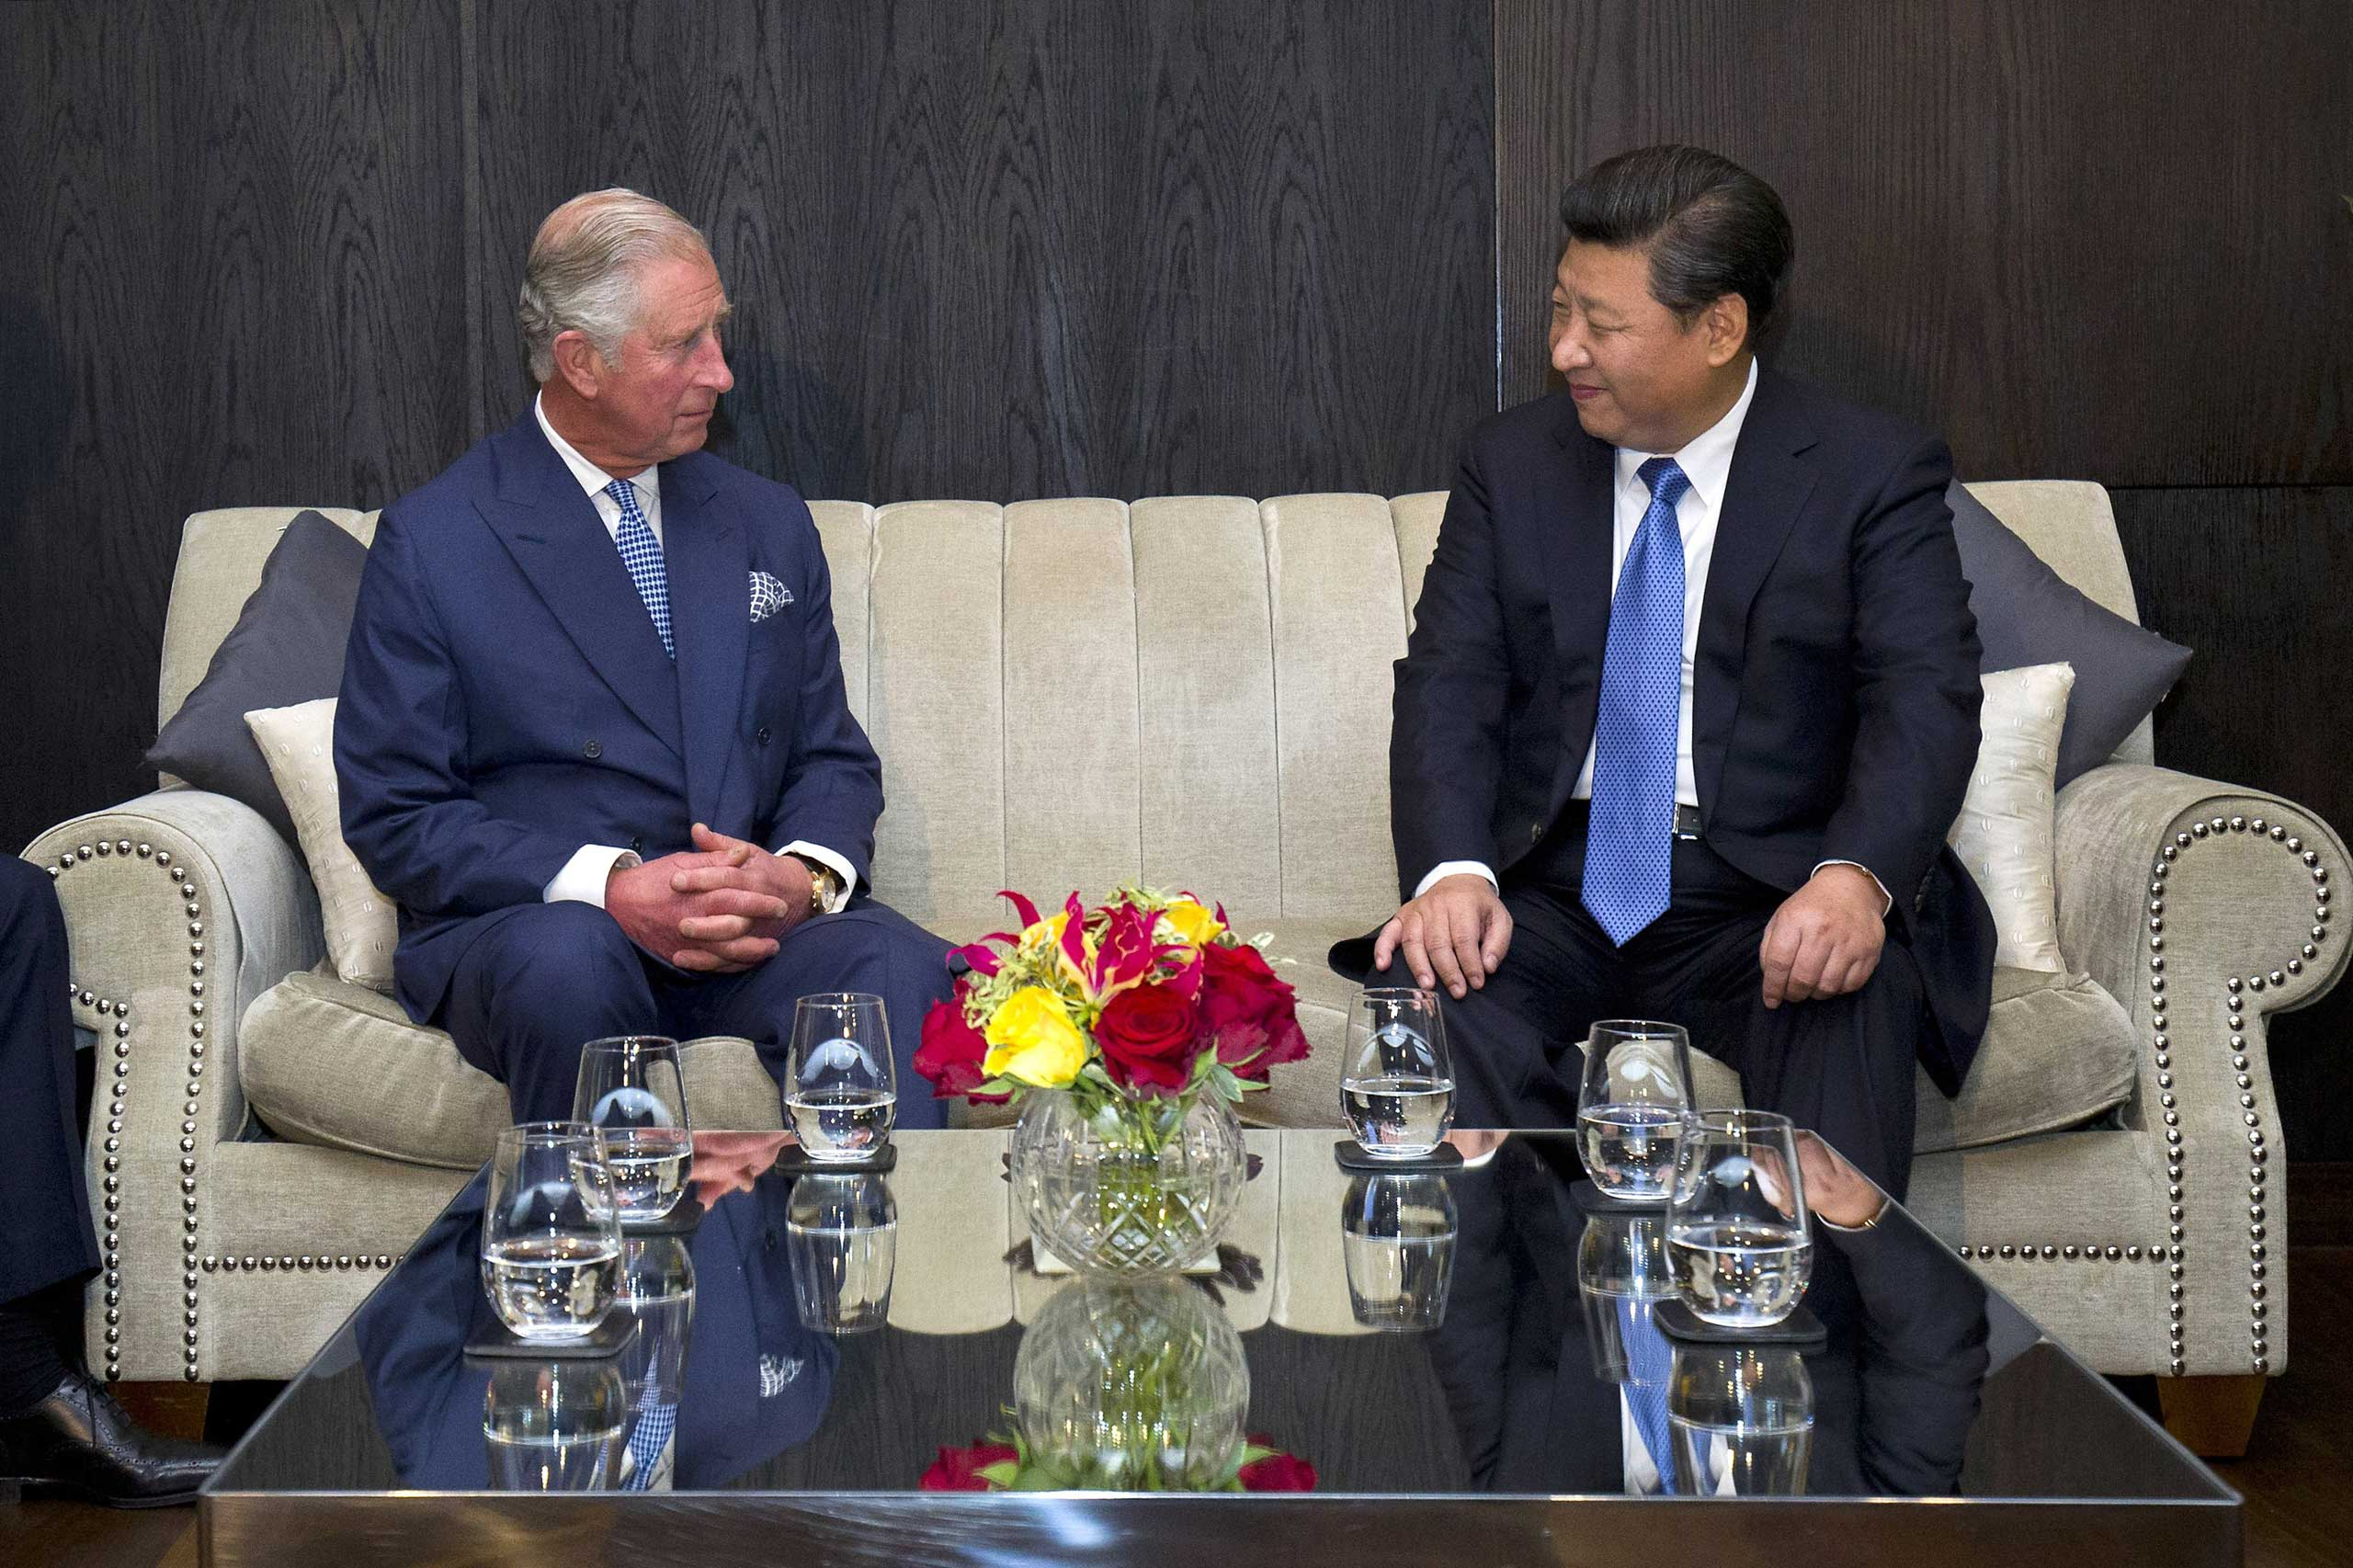 Prince Charles, Prince of Wales meets with President Xi Jinping at the Mandarin Oriental hotel in London, on Oct. 20, 2015